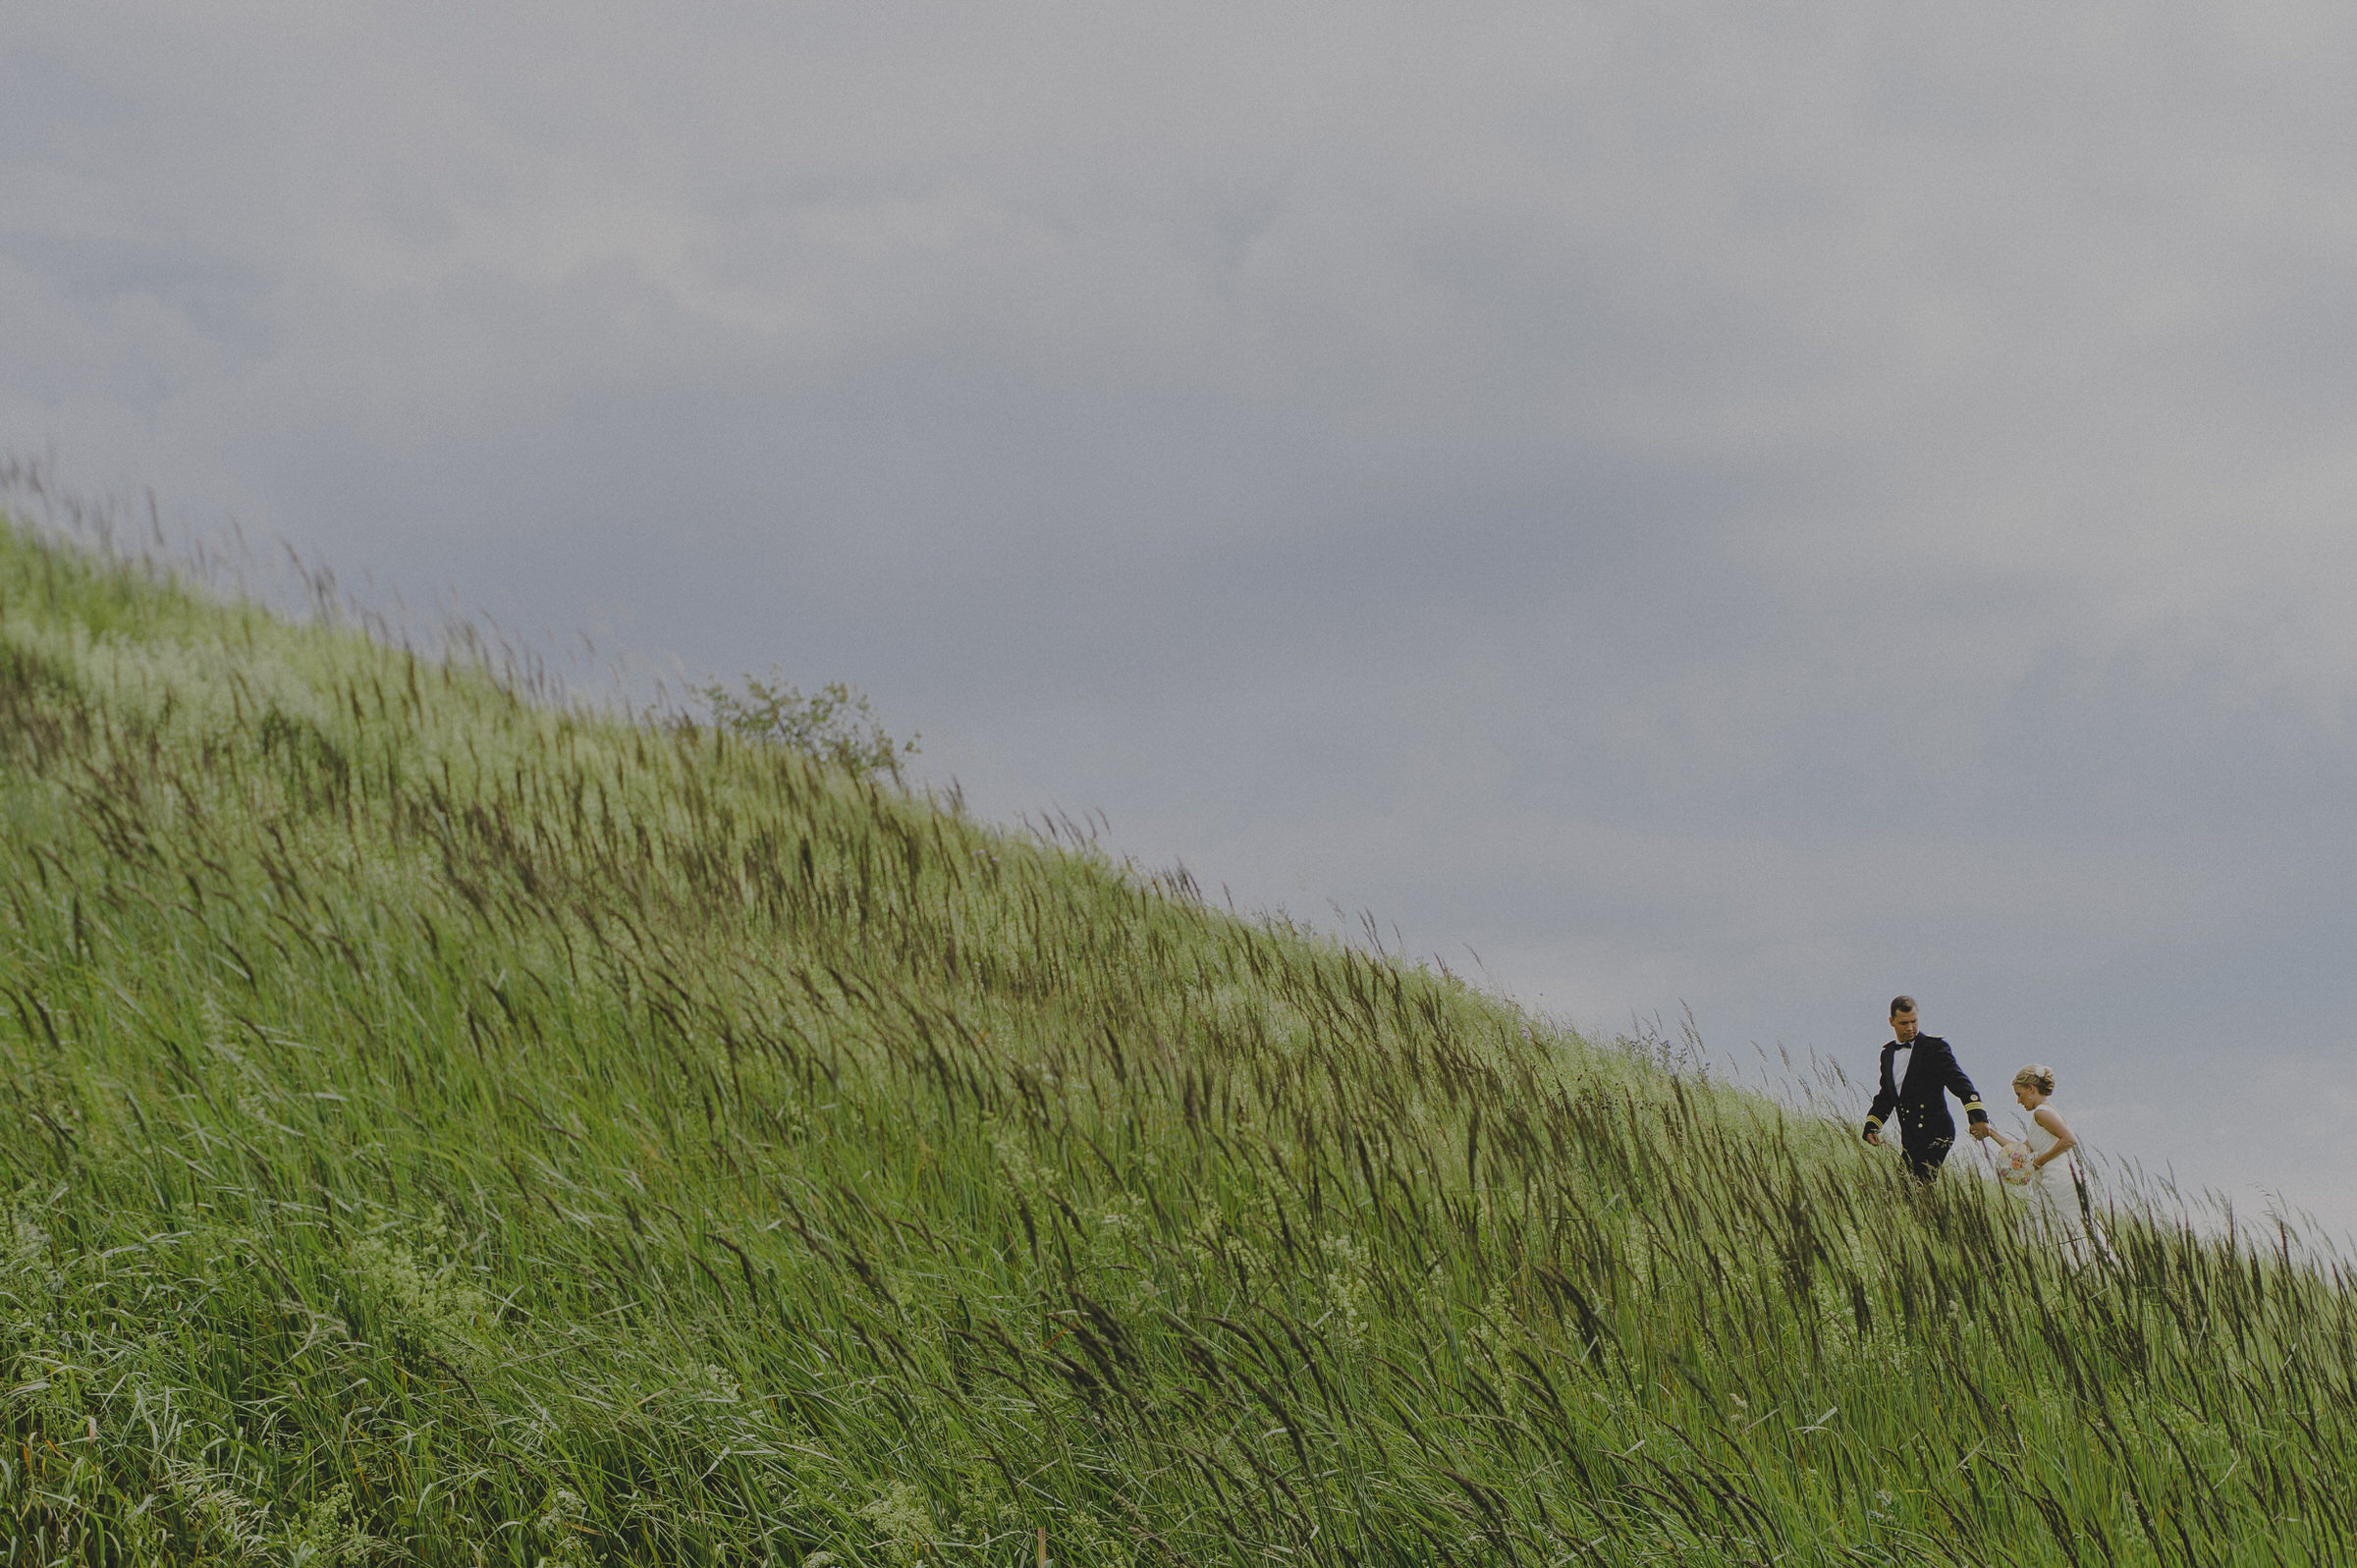 Couple climbing grassy slop in Estonia - photo by M&J Studios